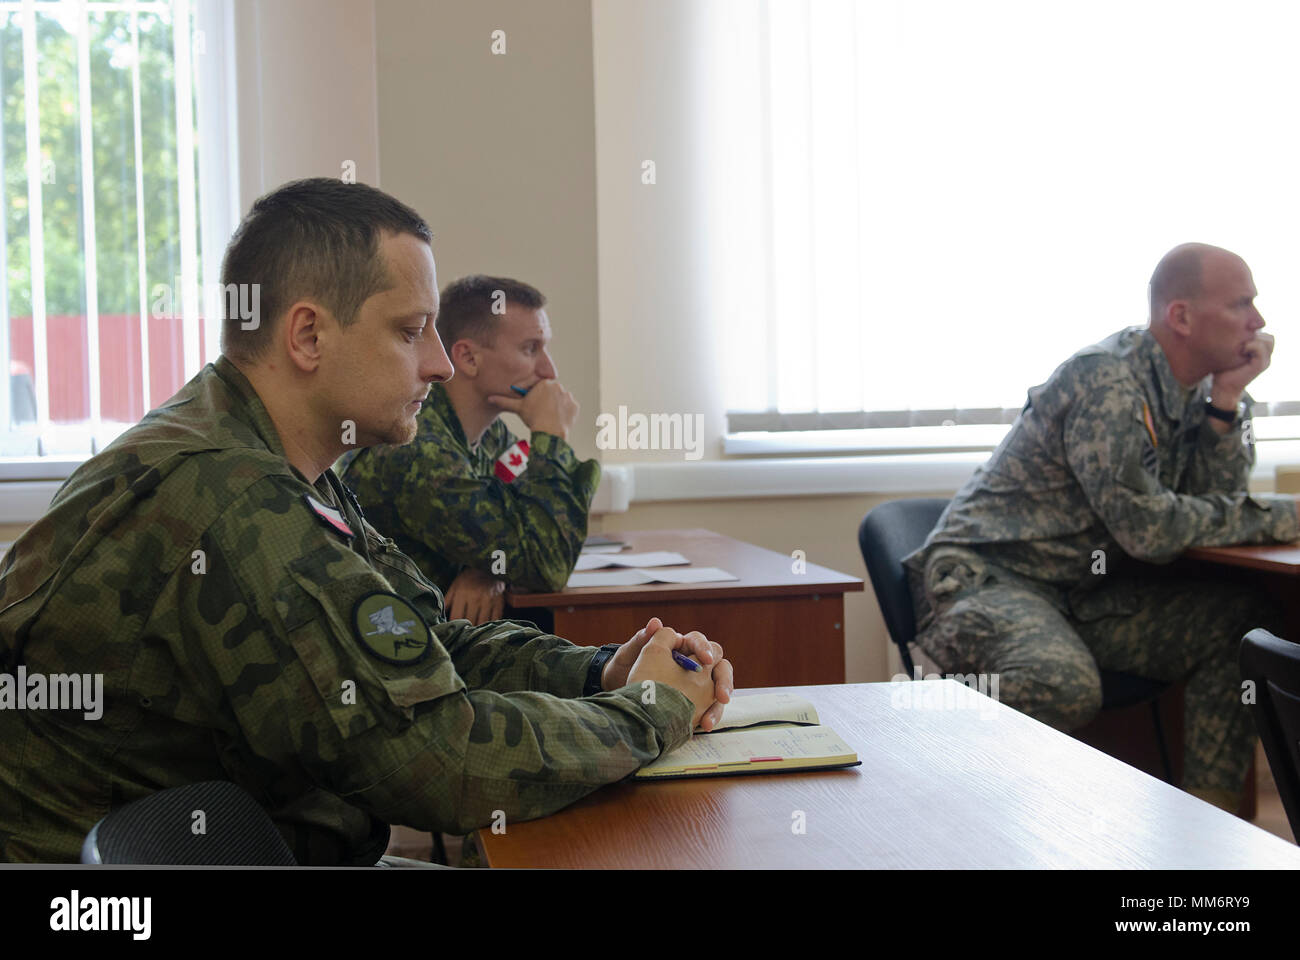 Canadian, Lithuanian, Polish and United States service members reviewed several local considerations in a civil affairs brief as part of Rapid Trident 17, Sept. 14, 2017, at the International Peacekeeping Security Center in Yavoriv, Ukraine. Stock Photo